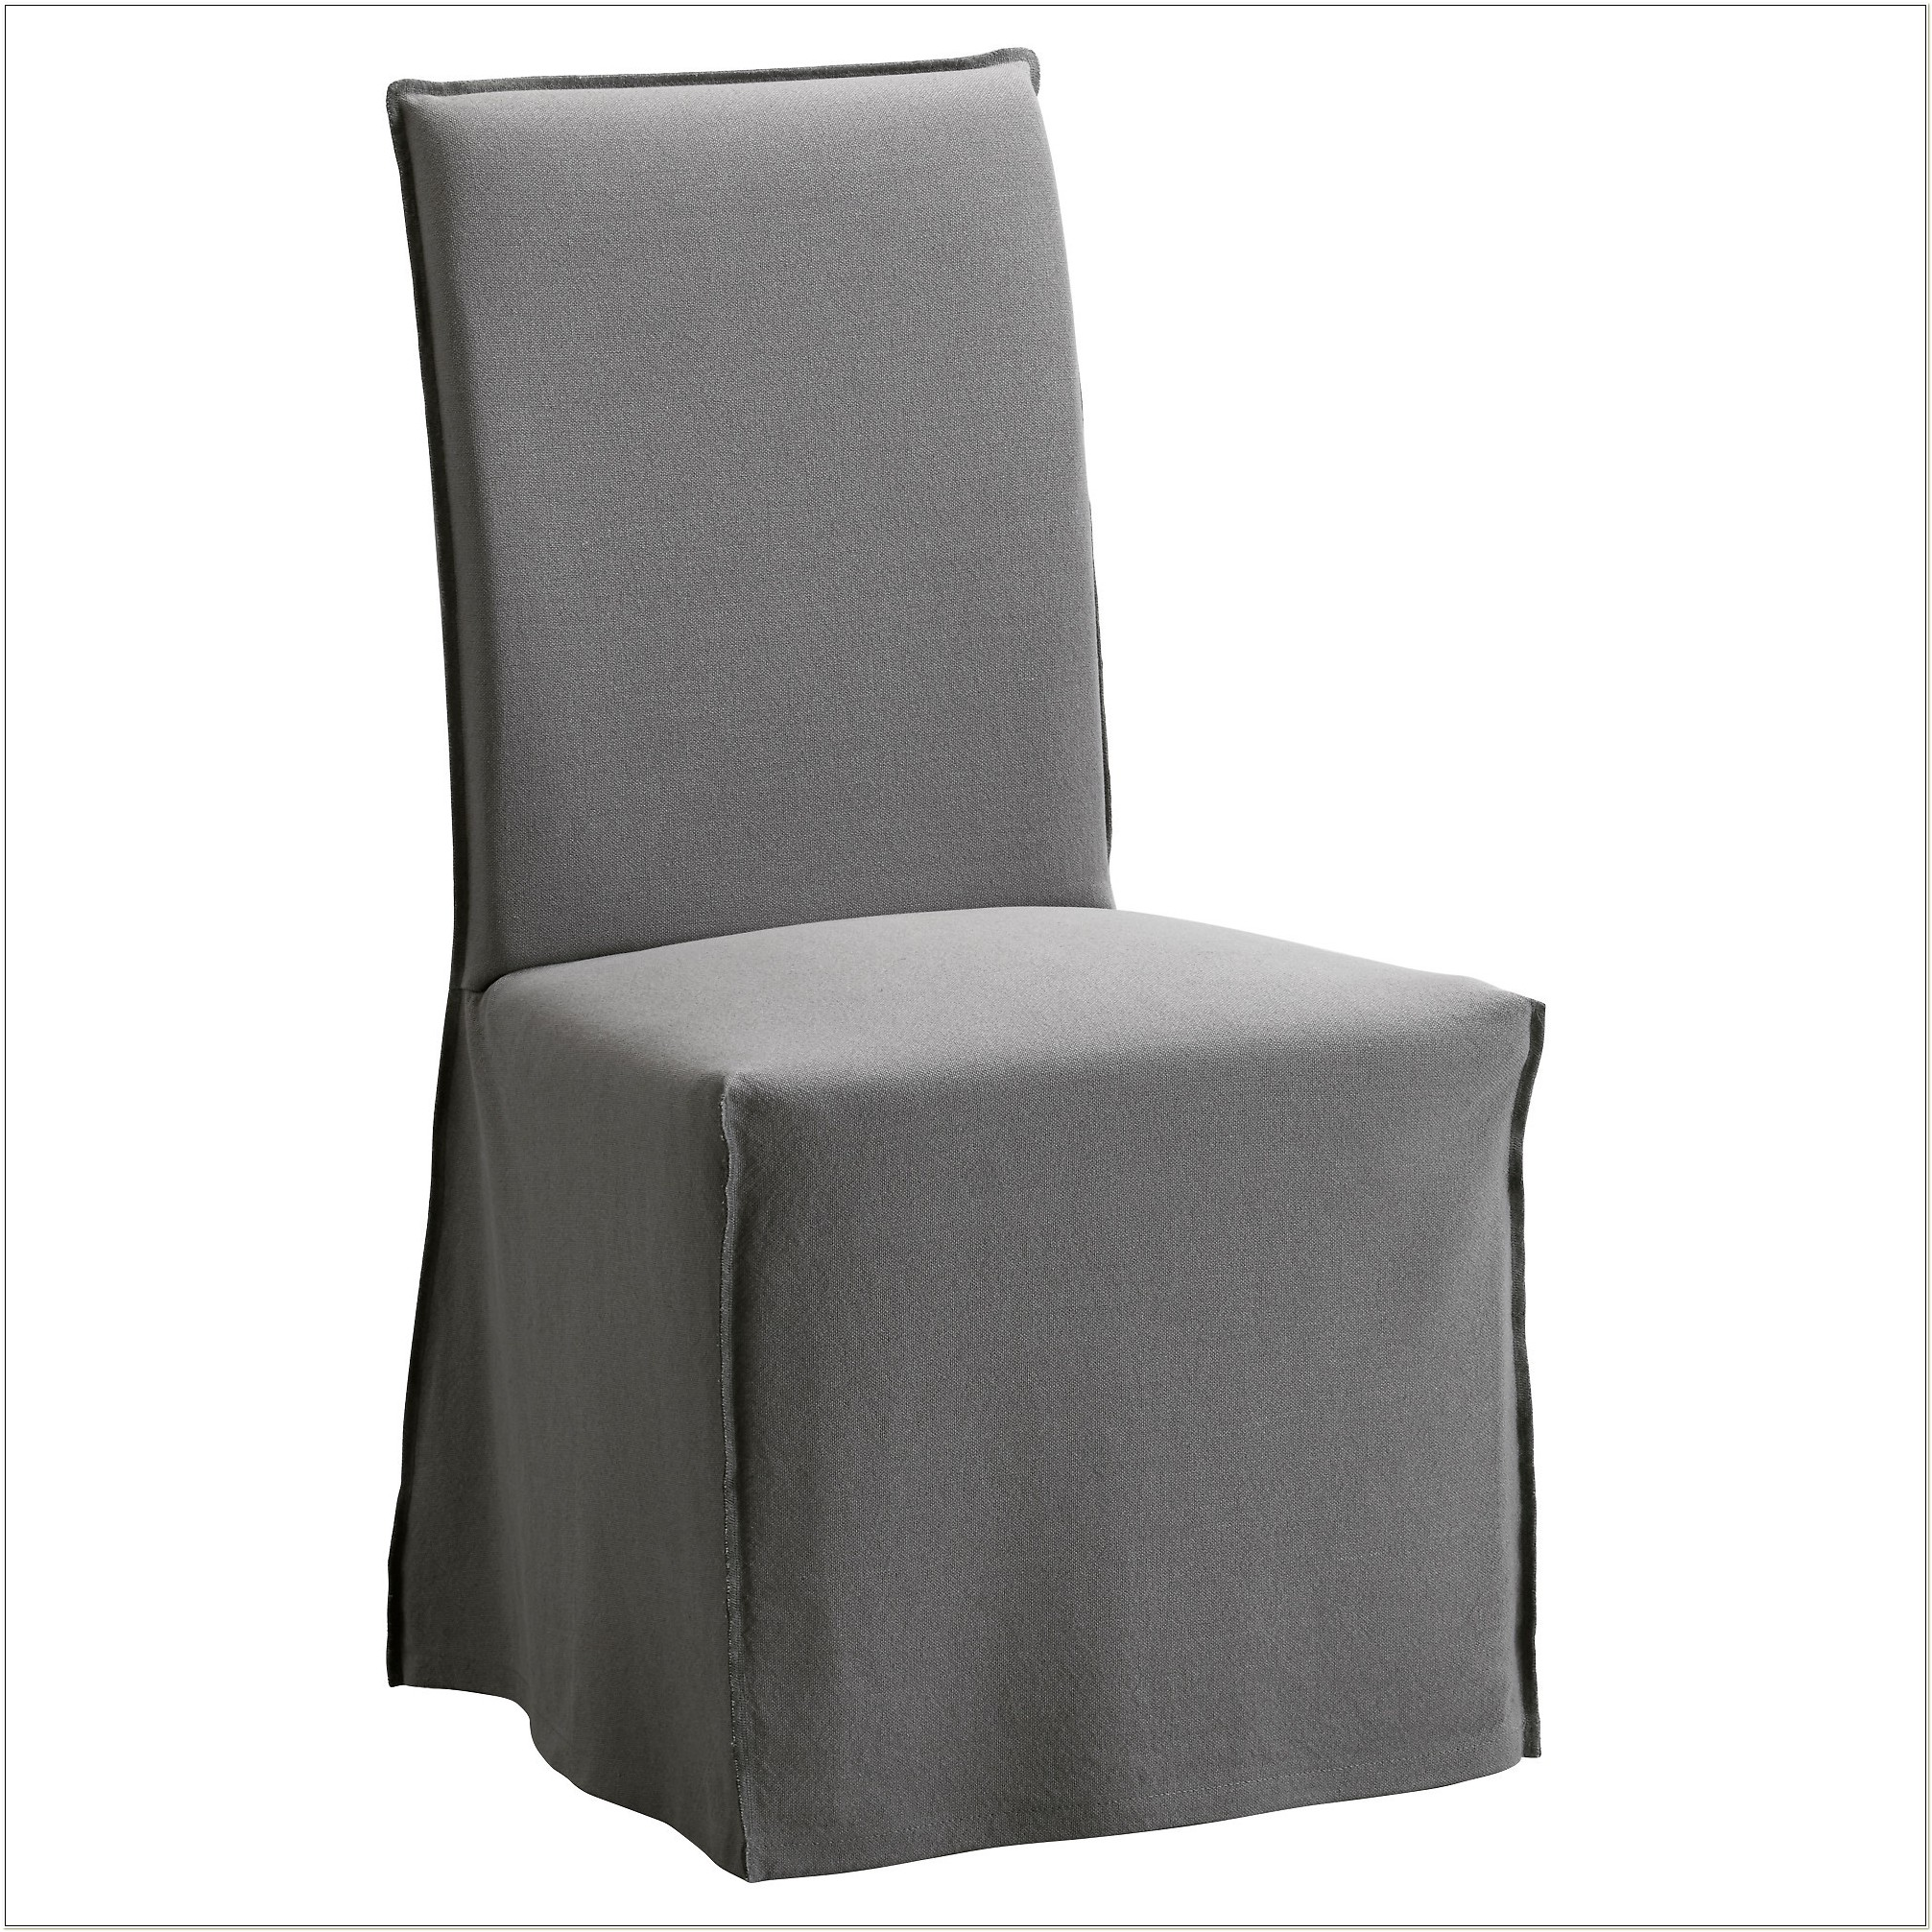 Ikea Henriksdal Dining Chair Covers